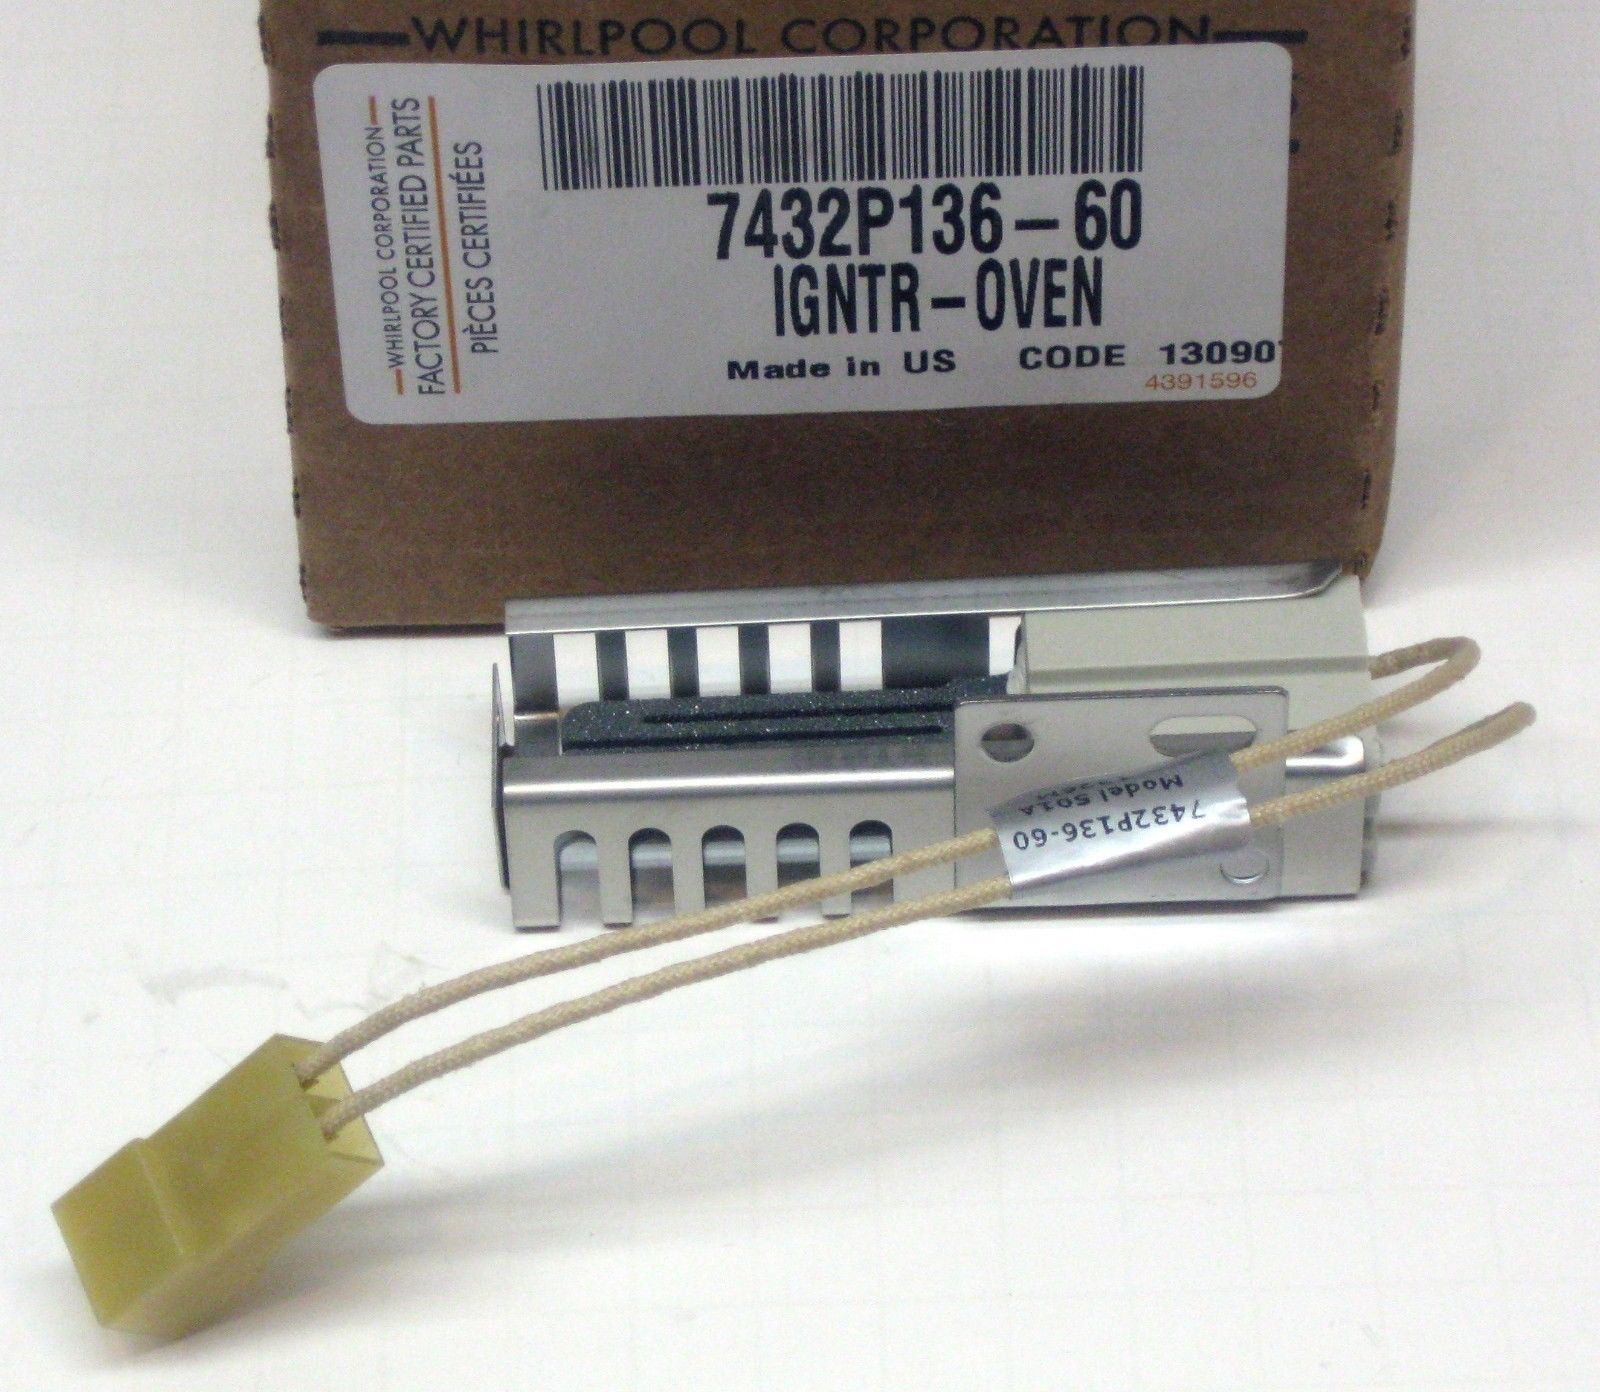 7432p136 60 Whirlpool Gas Range Oven Igniter For Maytag